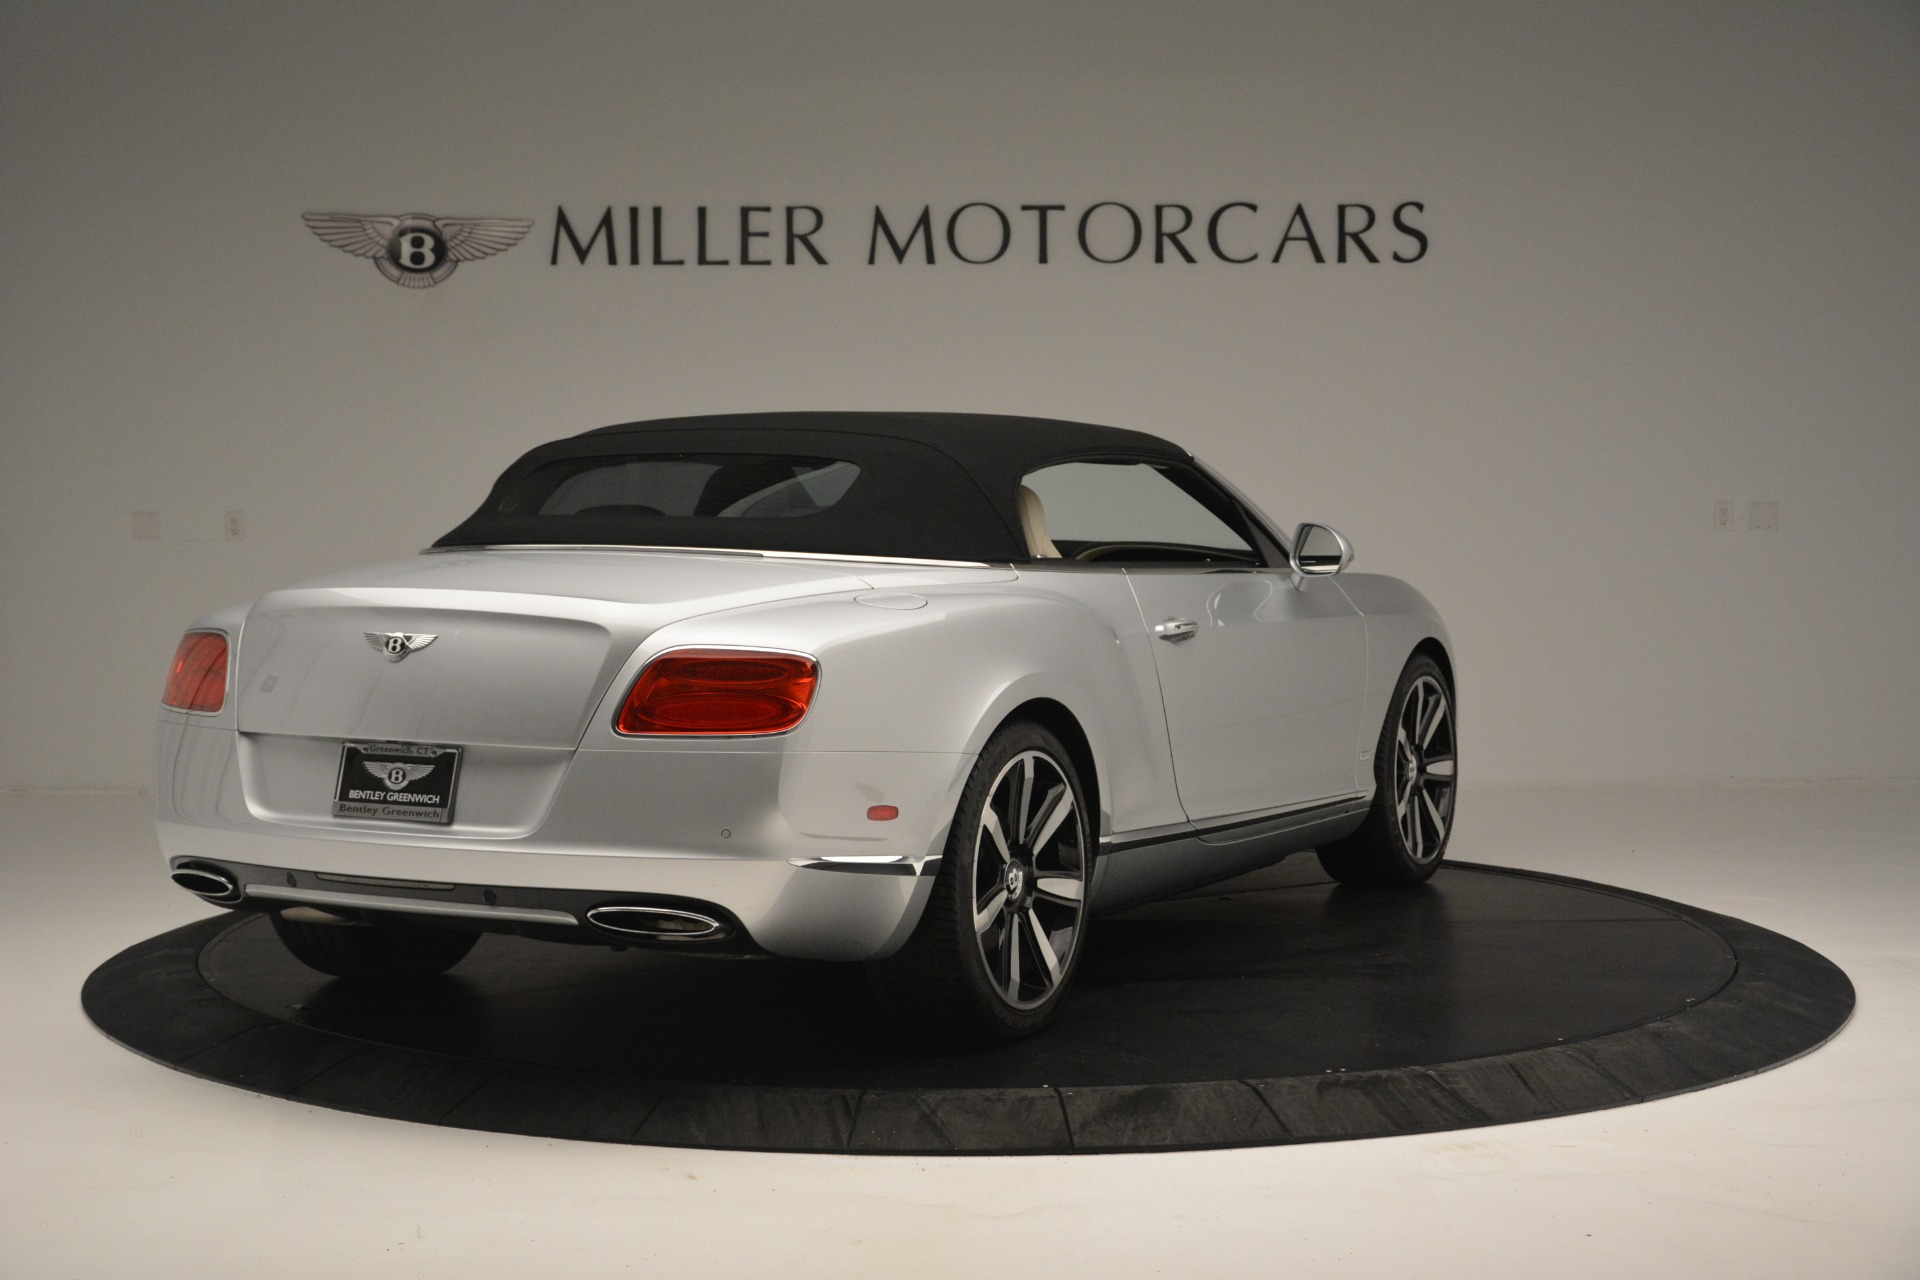 Used 2013 Bentley Continental GT W12 Le Mans Edition For Sale In Westport, CT 2519_p14